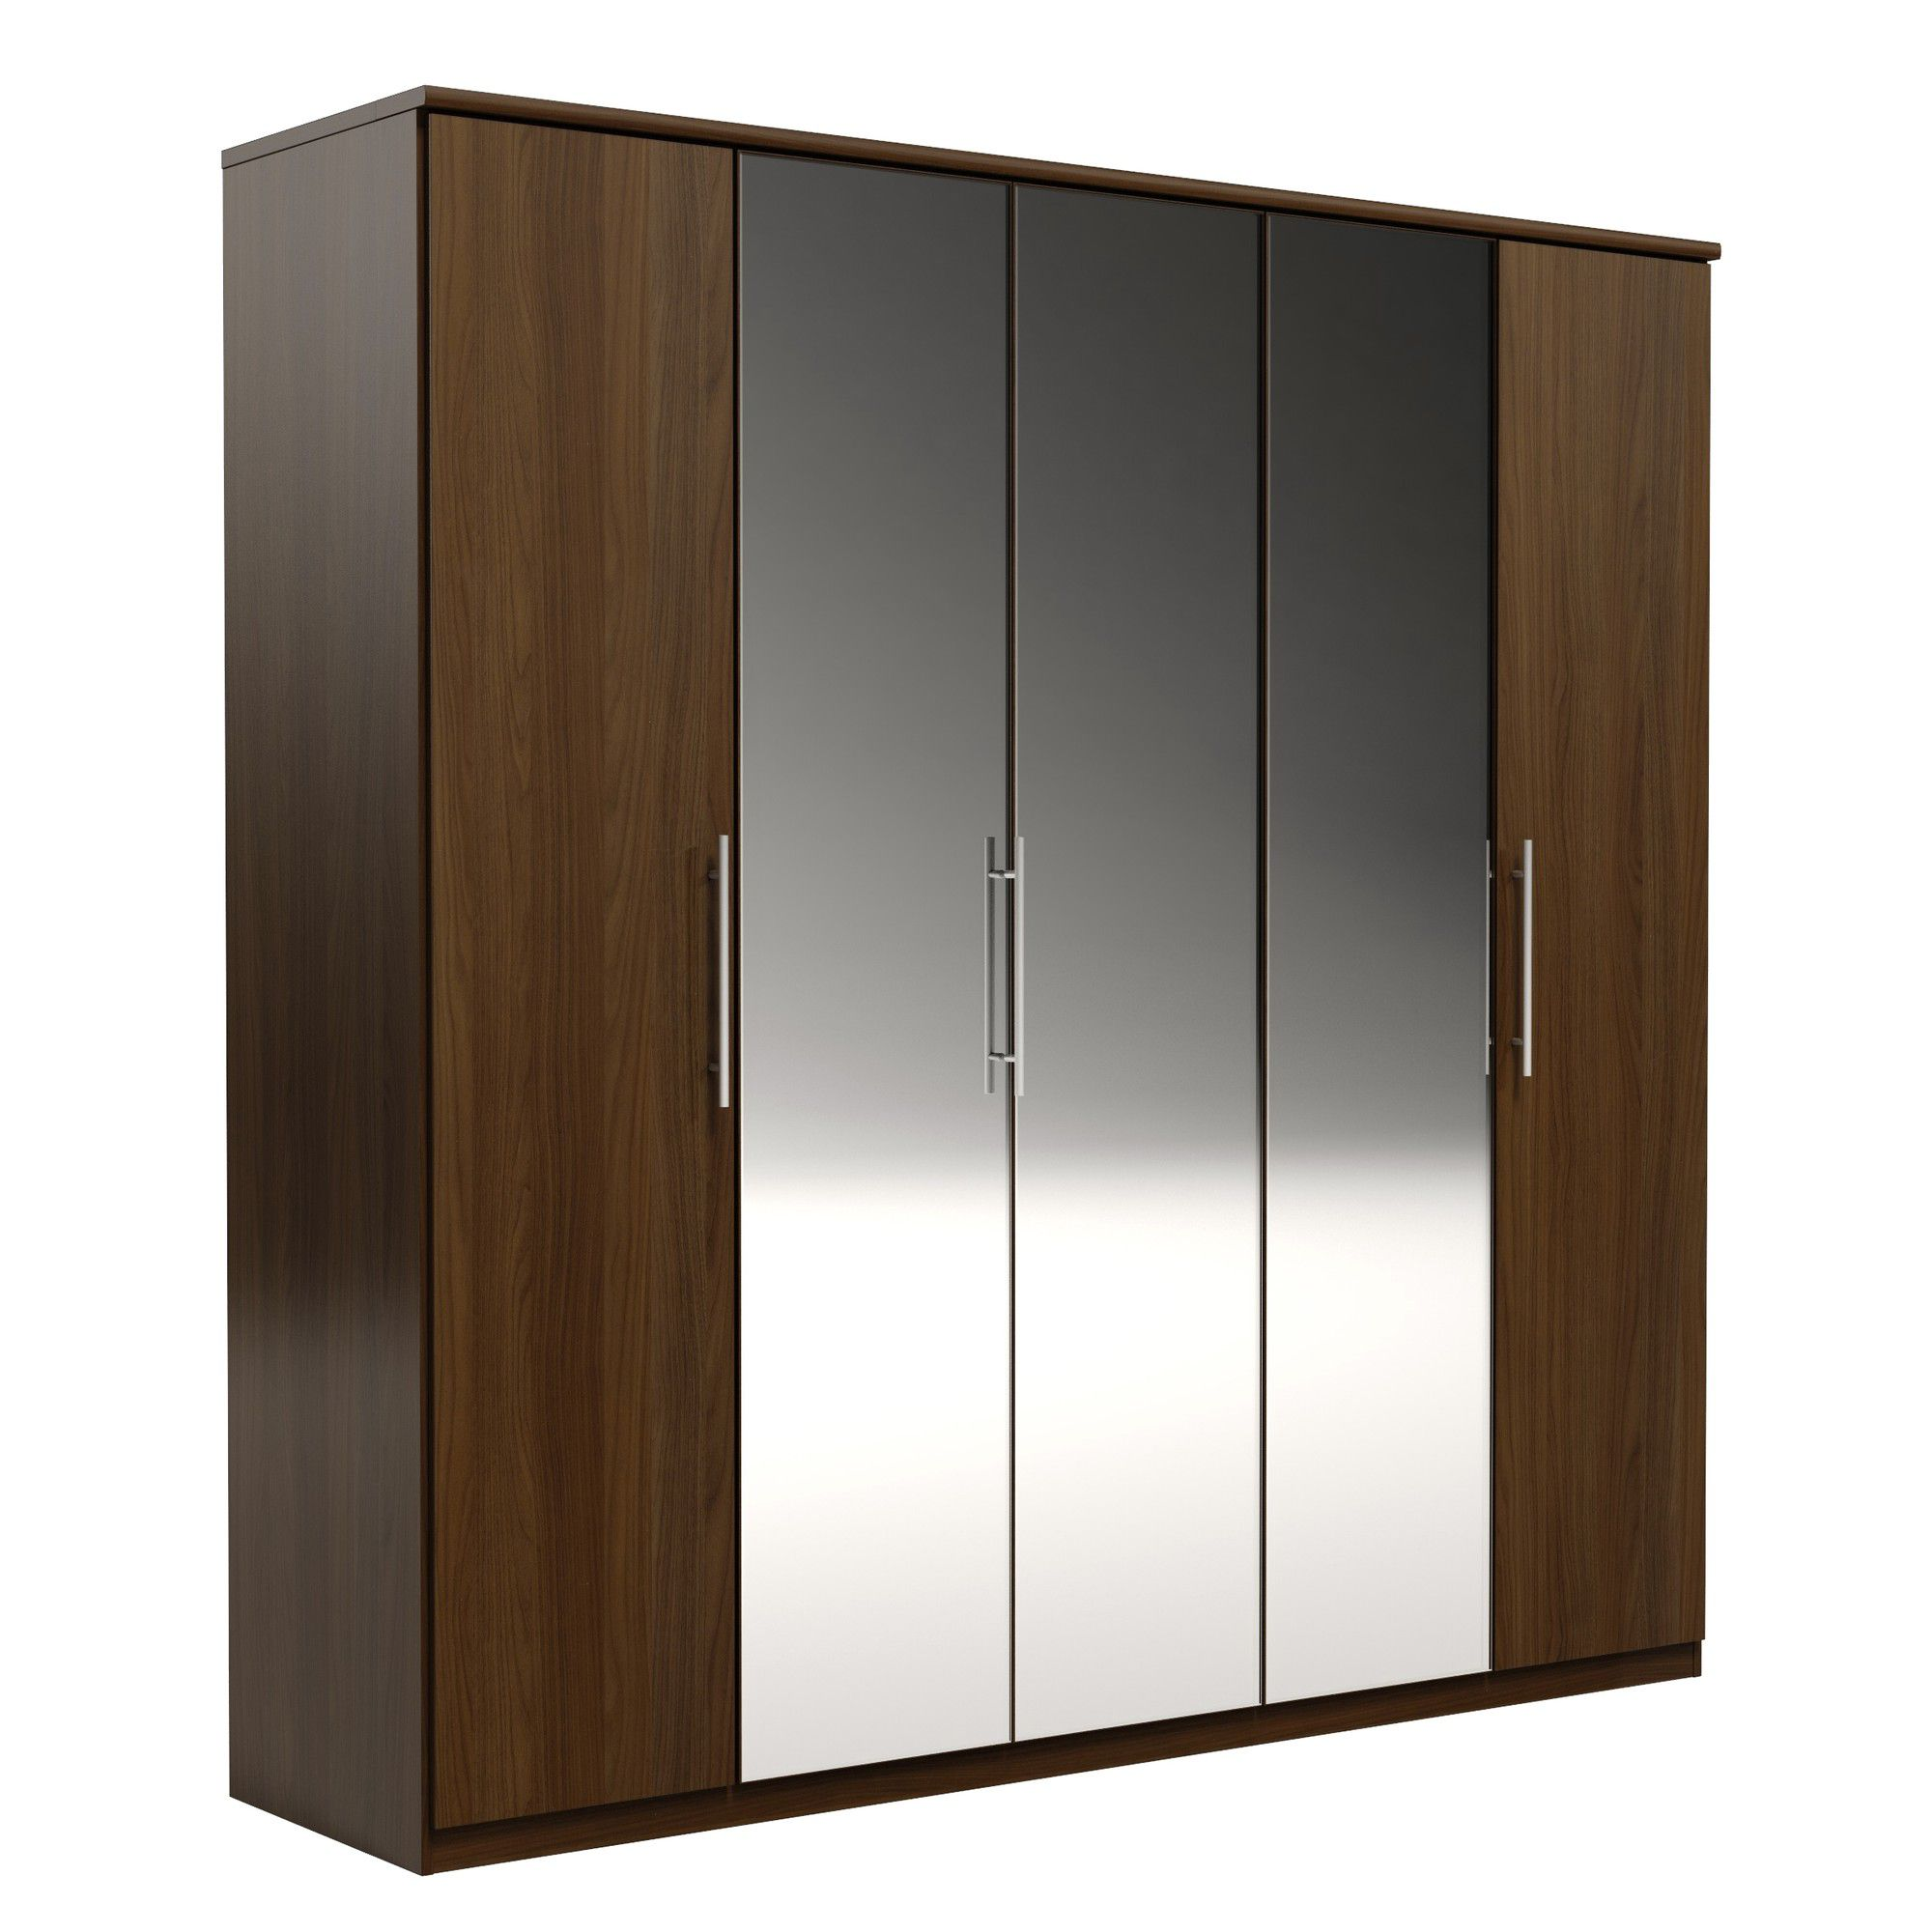 Urbane Designs Prague 5 Door Wardrobe - Walnut at Tesco Direct